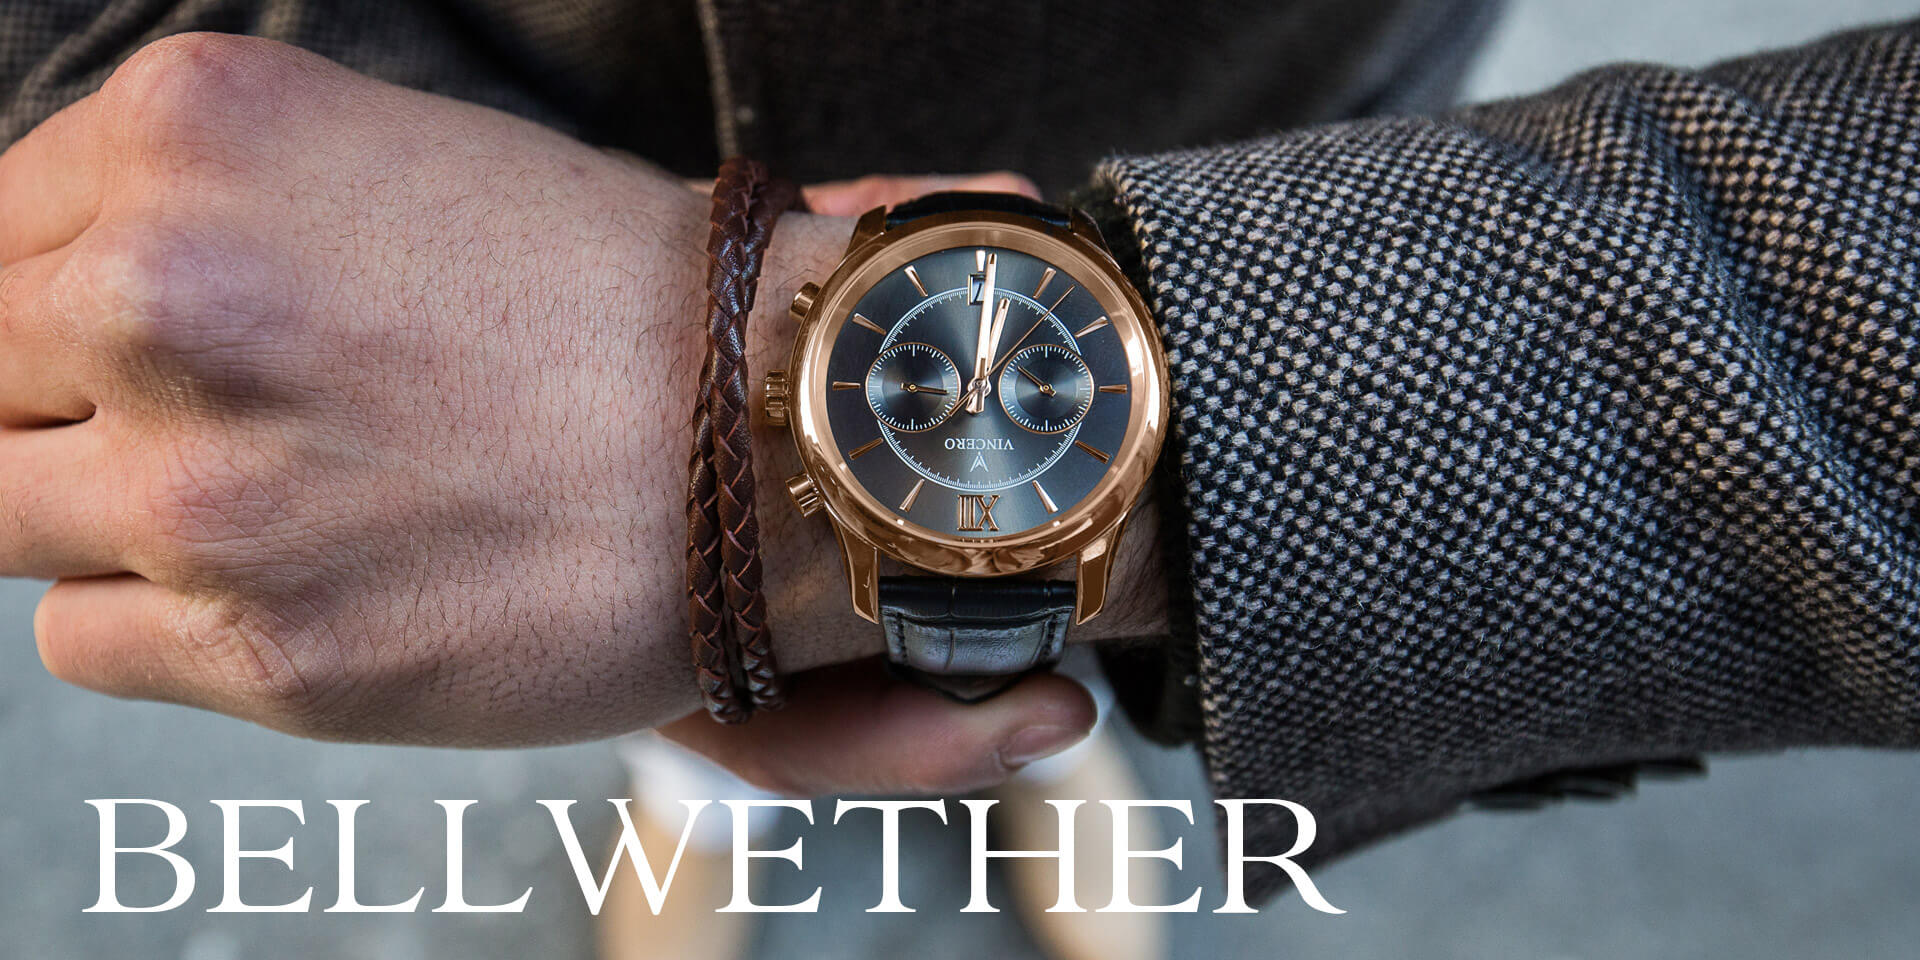 Bellwether Chronograph Dress Watches